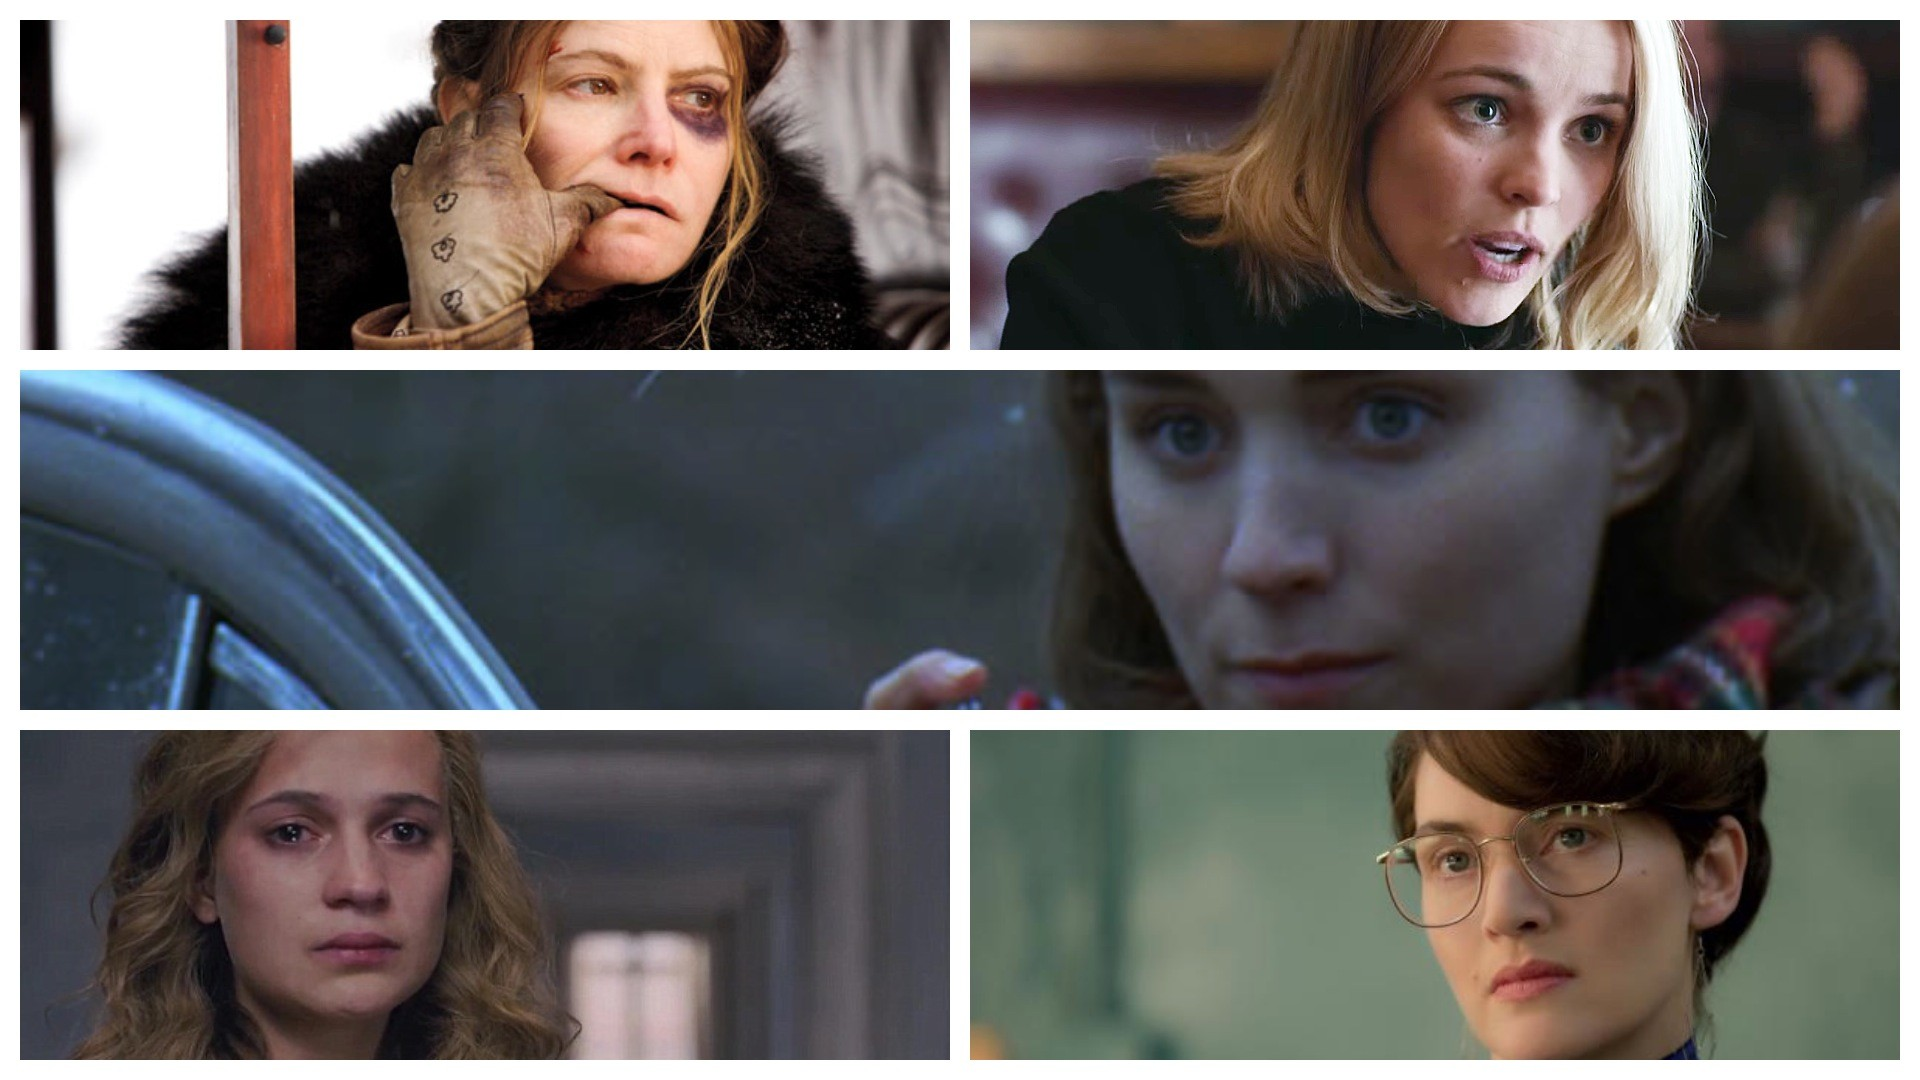 2016-best-supporting-actress-nominations-include-jennifer-jason-leigh-rooney-mara-rachel-mcadams-alicia-vikander-and-kate-winslet